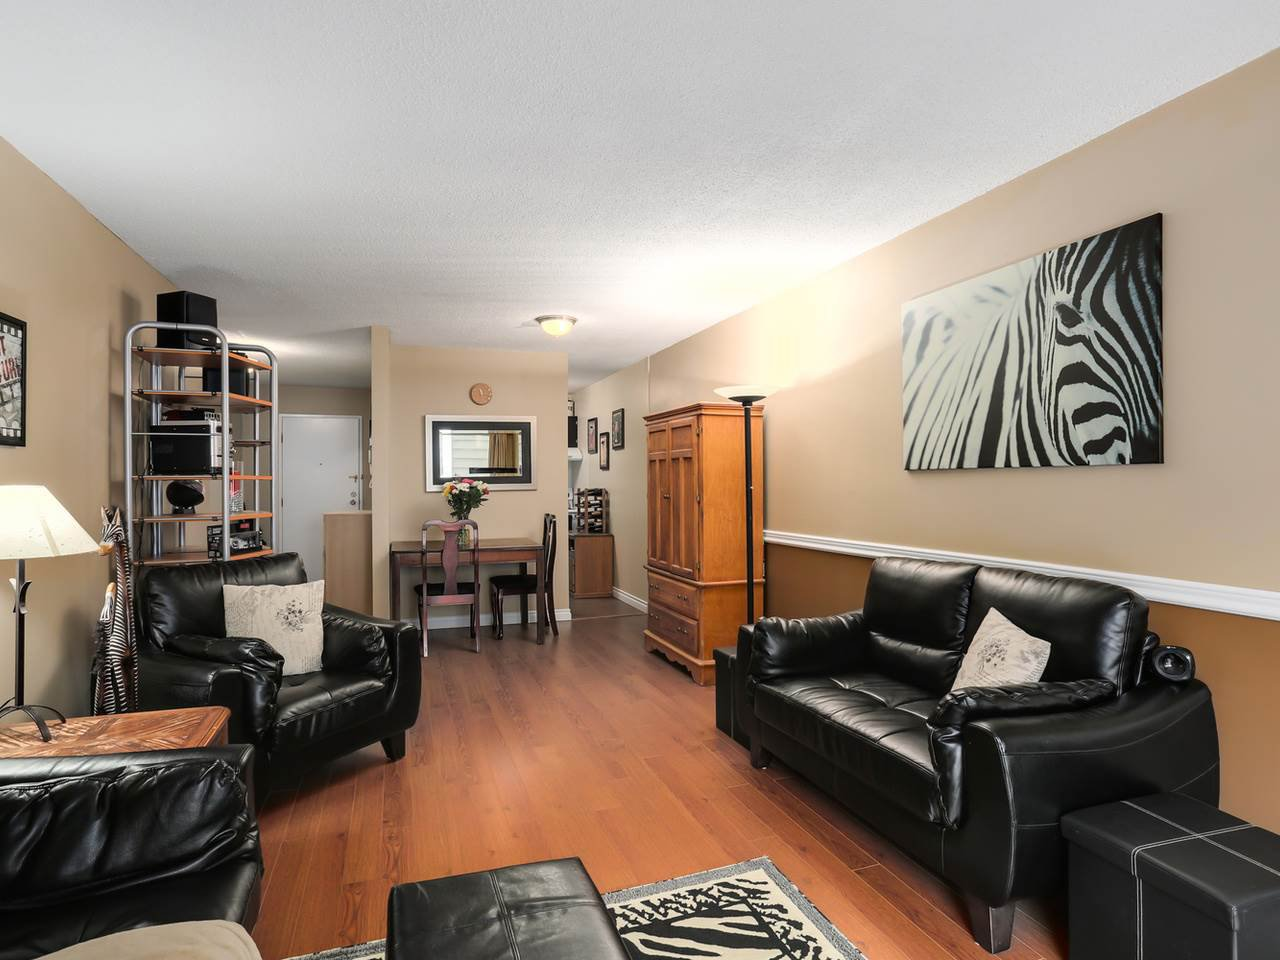 "Main Photo: 278C 8635 120 Street in Delta: Annieville Condo for sale in ""Delta Cedars"" (N. Delta)  : MLS®# R2037207"